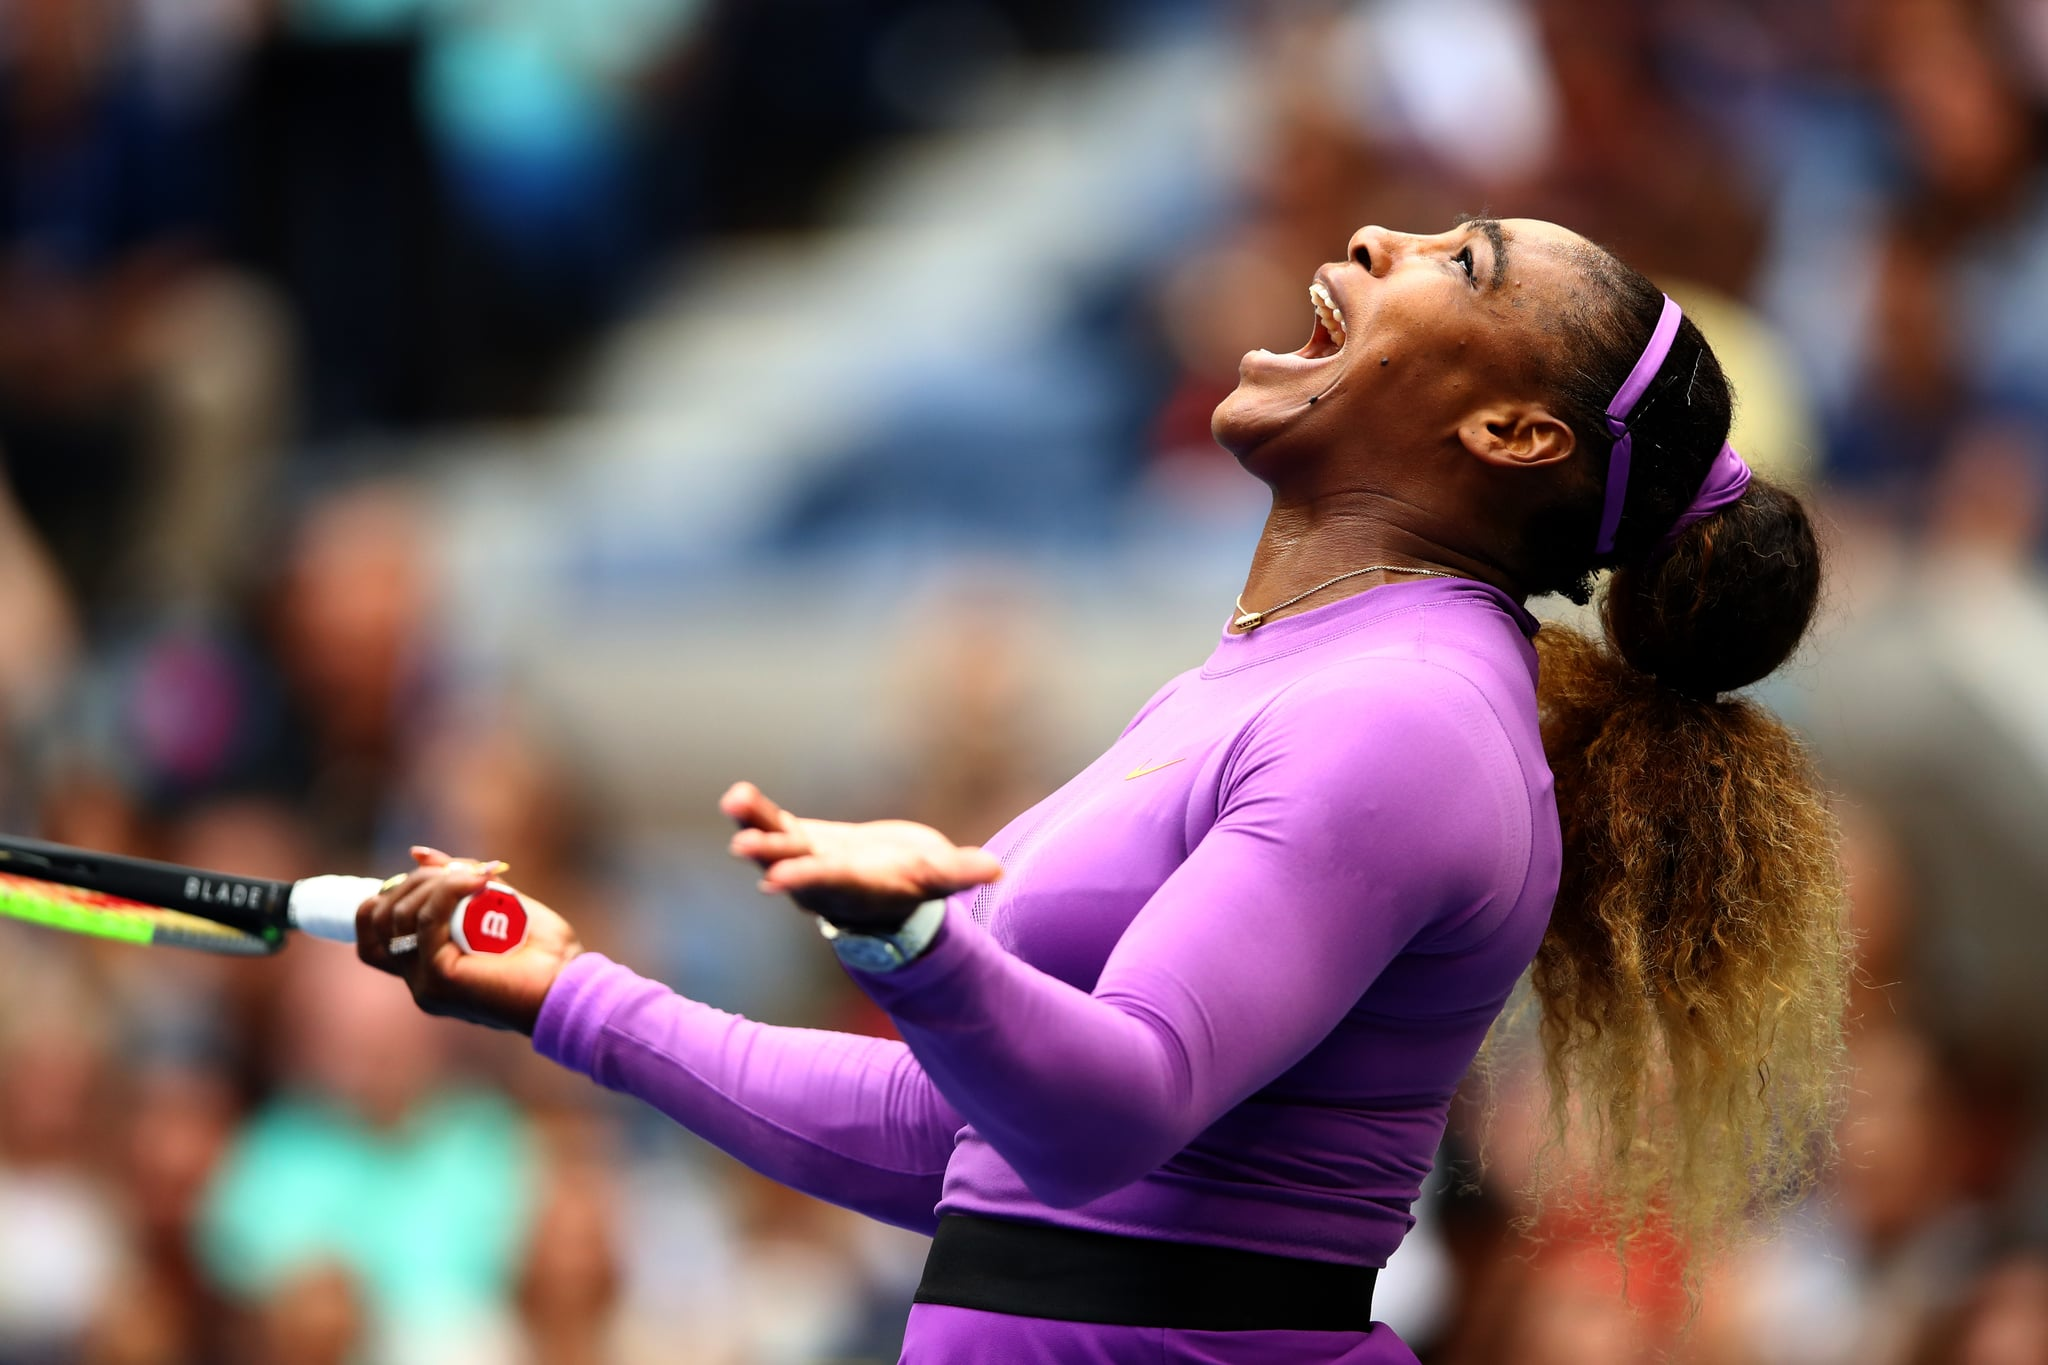 NEW YORK, NEW YORK - SEPTEMBER 07: Serena Williams of the United States reacts during her Women's Singles final match against Bianca Andreescu of Canada on day thirteen of the 2019 US Open at the USTA Billie Jean King National Tennis Centre on September 07, 2019 in Queens borough of New York City.   (Photo by Clive Brunskill/Getty Images)